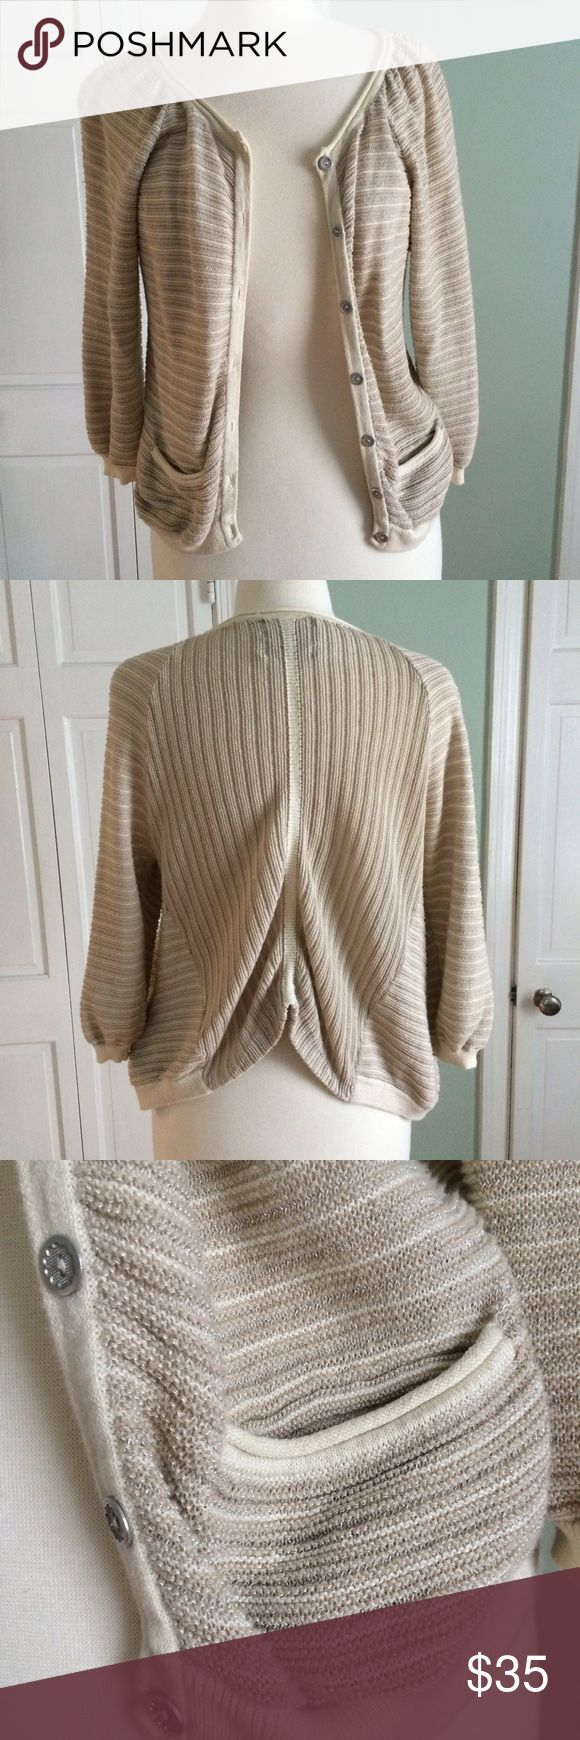 ANTHRO Guinevere cream cardigan EUC cream cardigan sweater with a touch of subtle metallic thread. Buttons work, so do pockets. The easiest sweater to throw over any outfit. Anthropologie Sweaters Cardigans